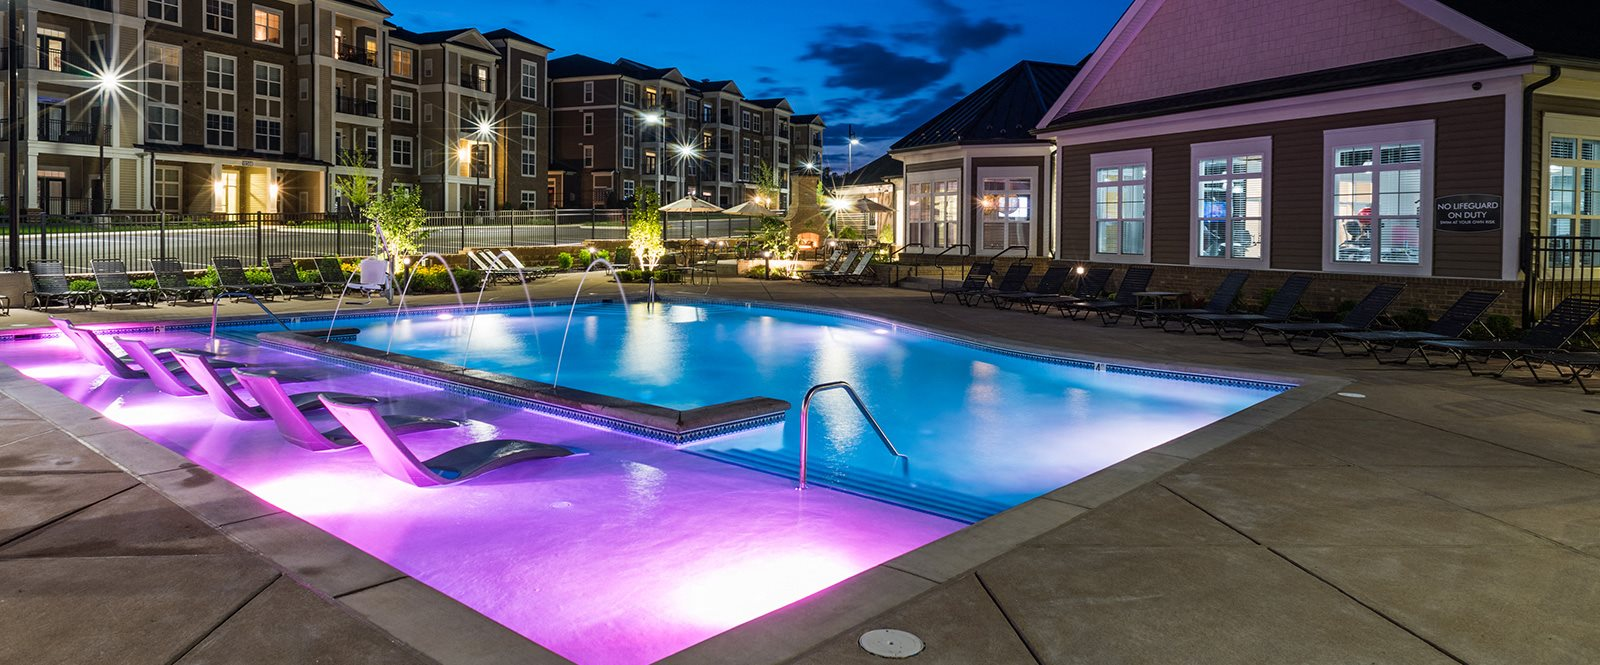 Sparkling Swimming Pool at Abberly at Southpoint Apartment Homes by HHHunt, Fredericksburg, 22407